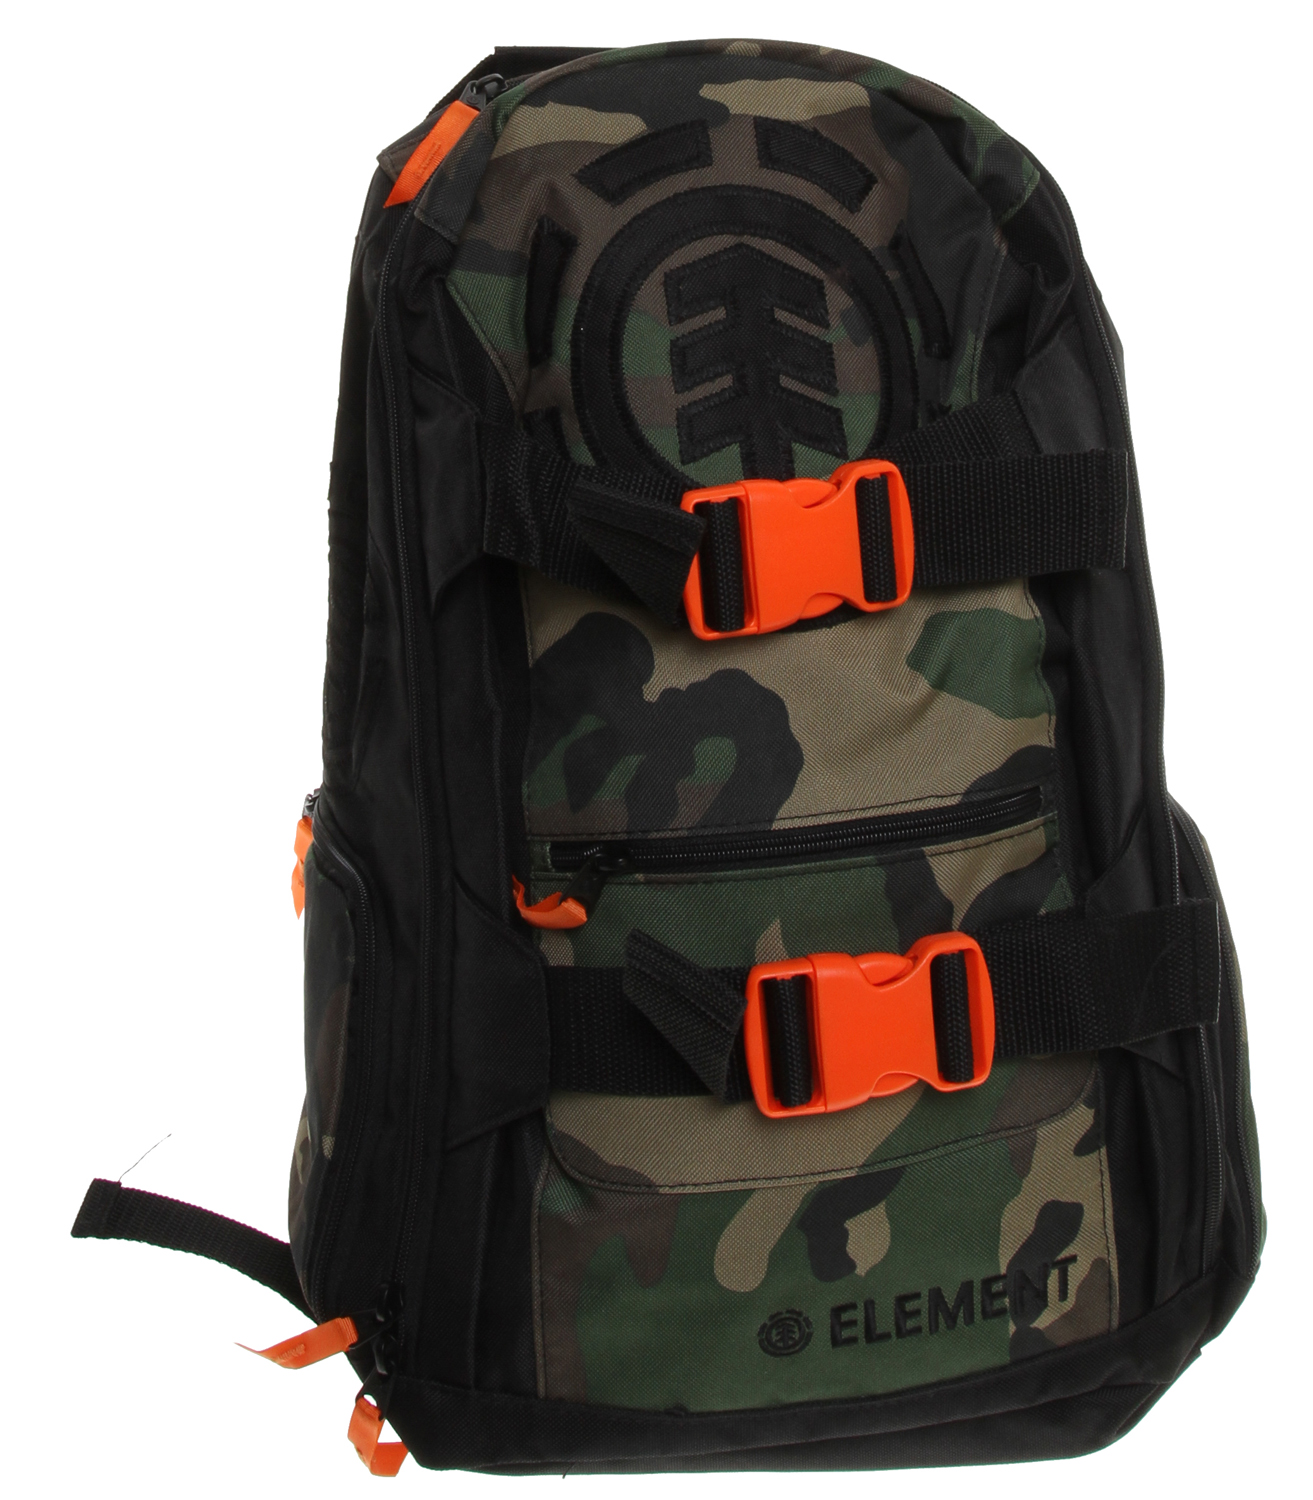 "Skateboard Key Features of the Element Mohave Camo Backpack : 600D 100% poly with buckle skate straps Zip side pockets Fleece sunglass drop sleeve Inside laptop sleeve and front zip drop pocket with front applique 11""w x 20""h x 8""d - $37.95"